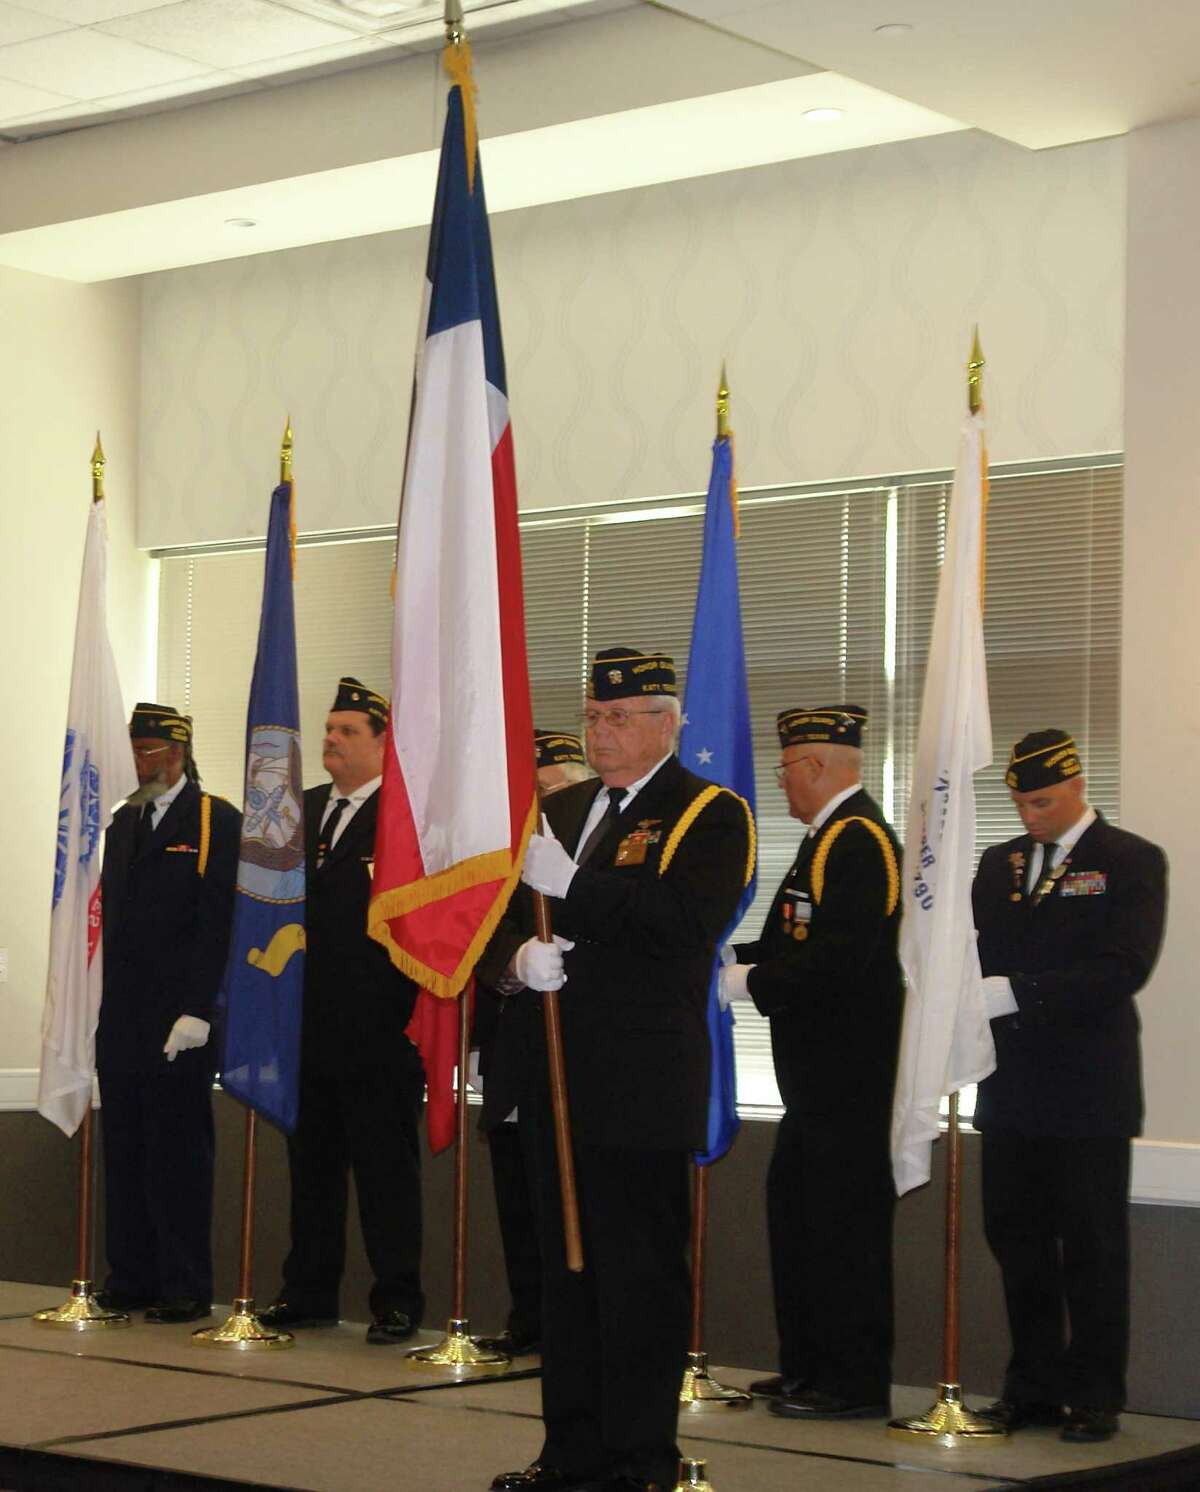 Members of the VFW Post No. 9182 Color Guard present the colors at the Salute to Veterans on Friday, Nov. 11, at Norris Convention Center.